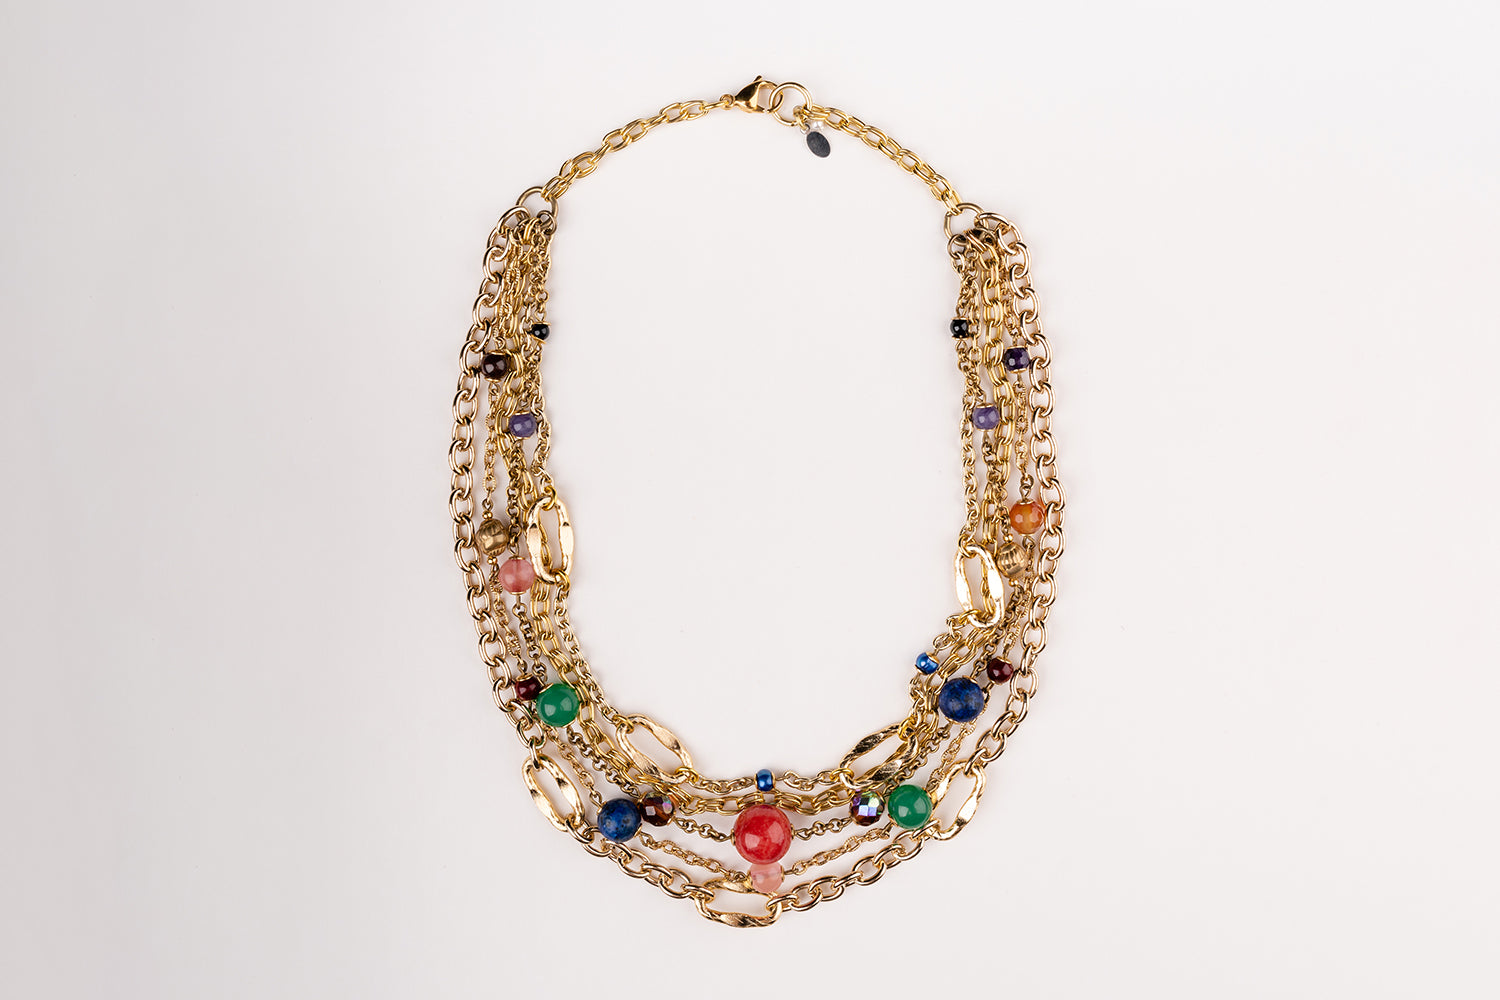 a Carolily Finery statement necklace made from gold plated chain, freshwater pearls and various gemstones